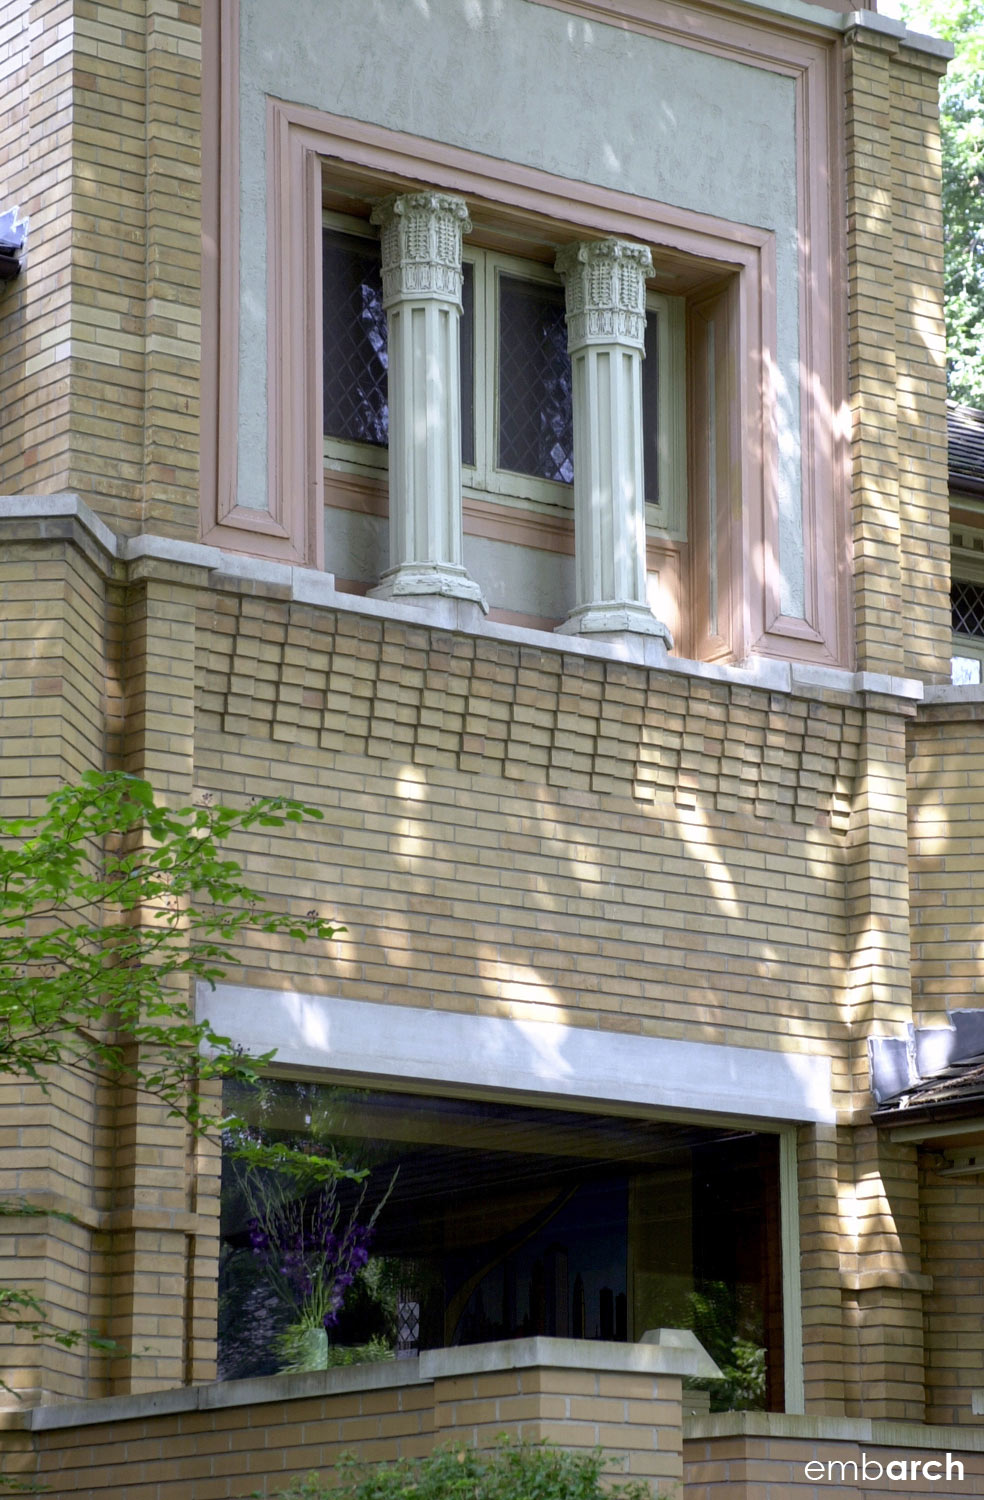 R Furbeck House - exterior detail